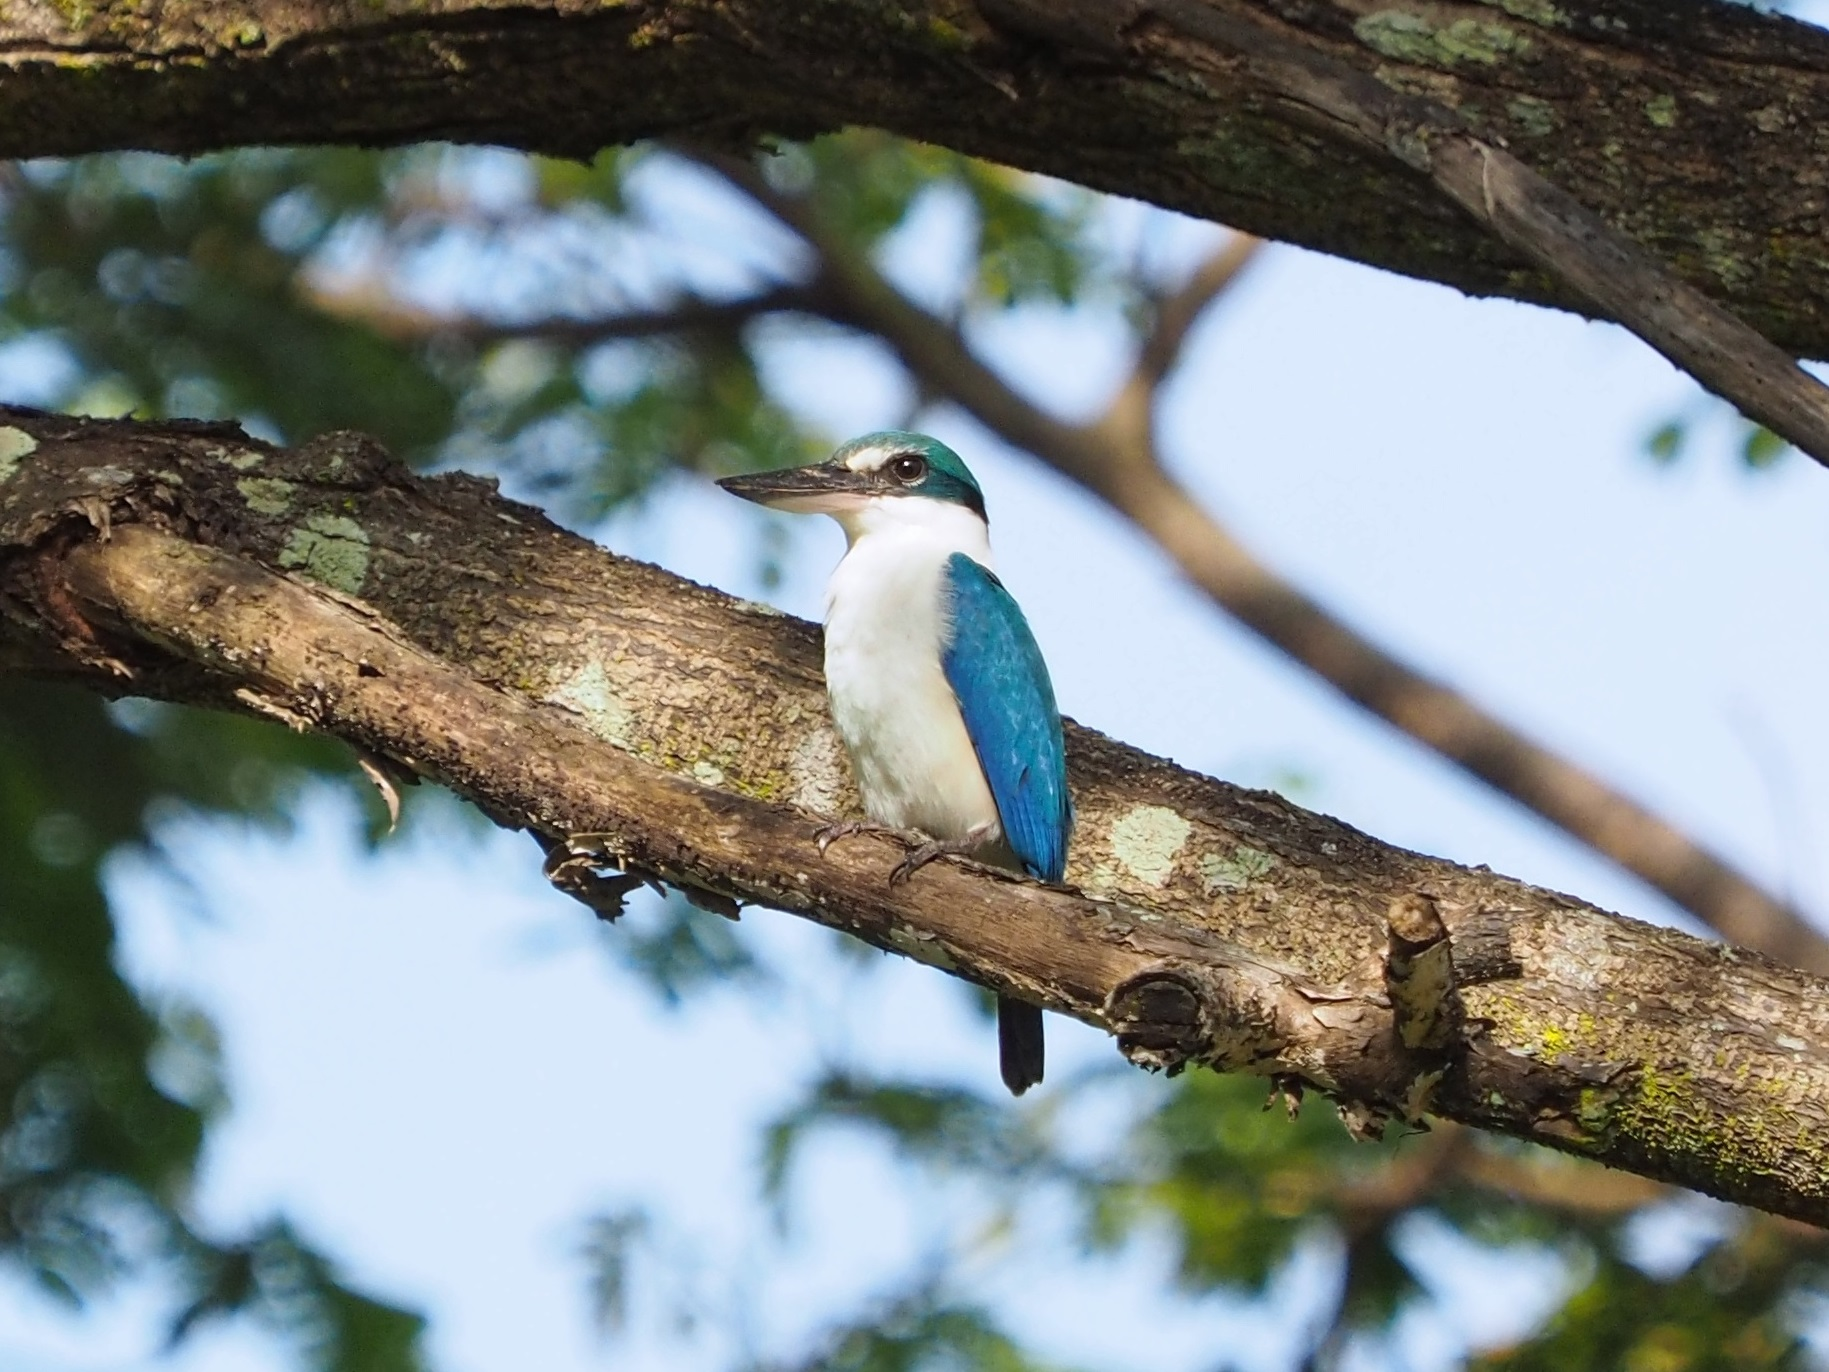 Raucous calling from the noisy collared kingfisher